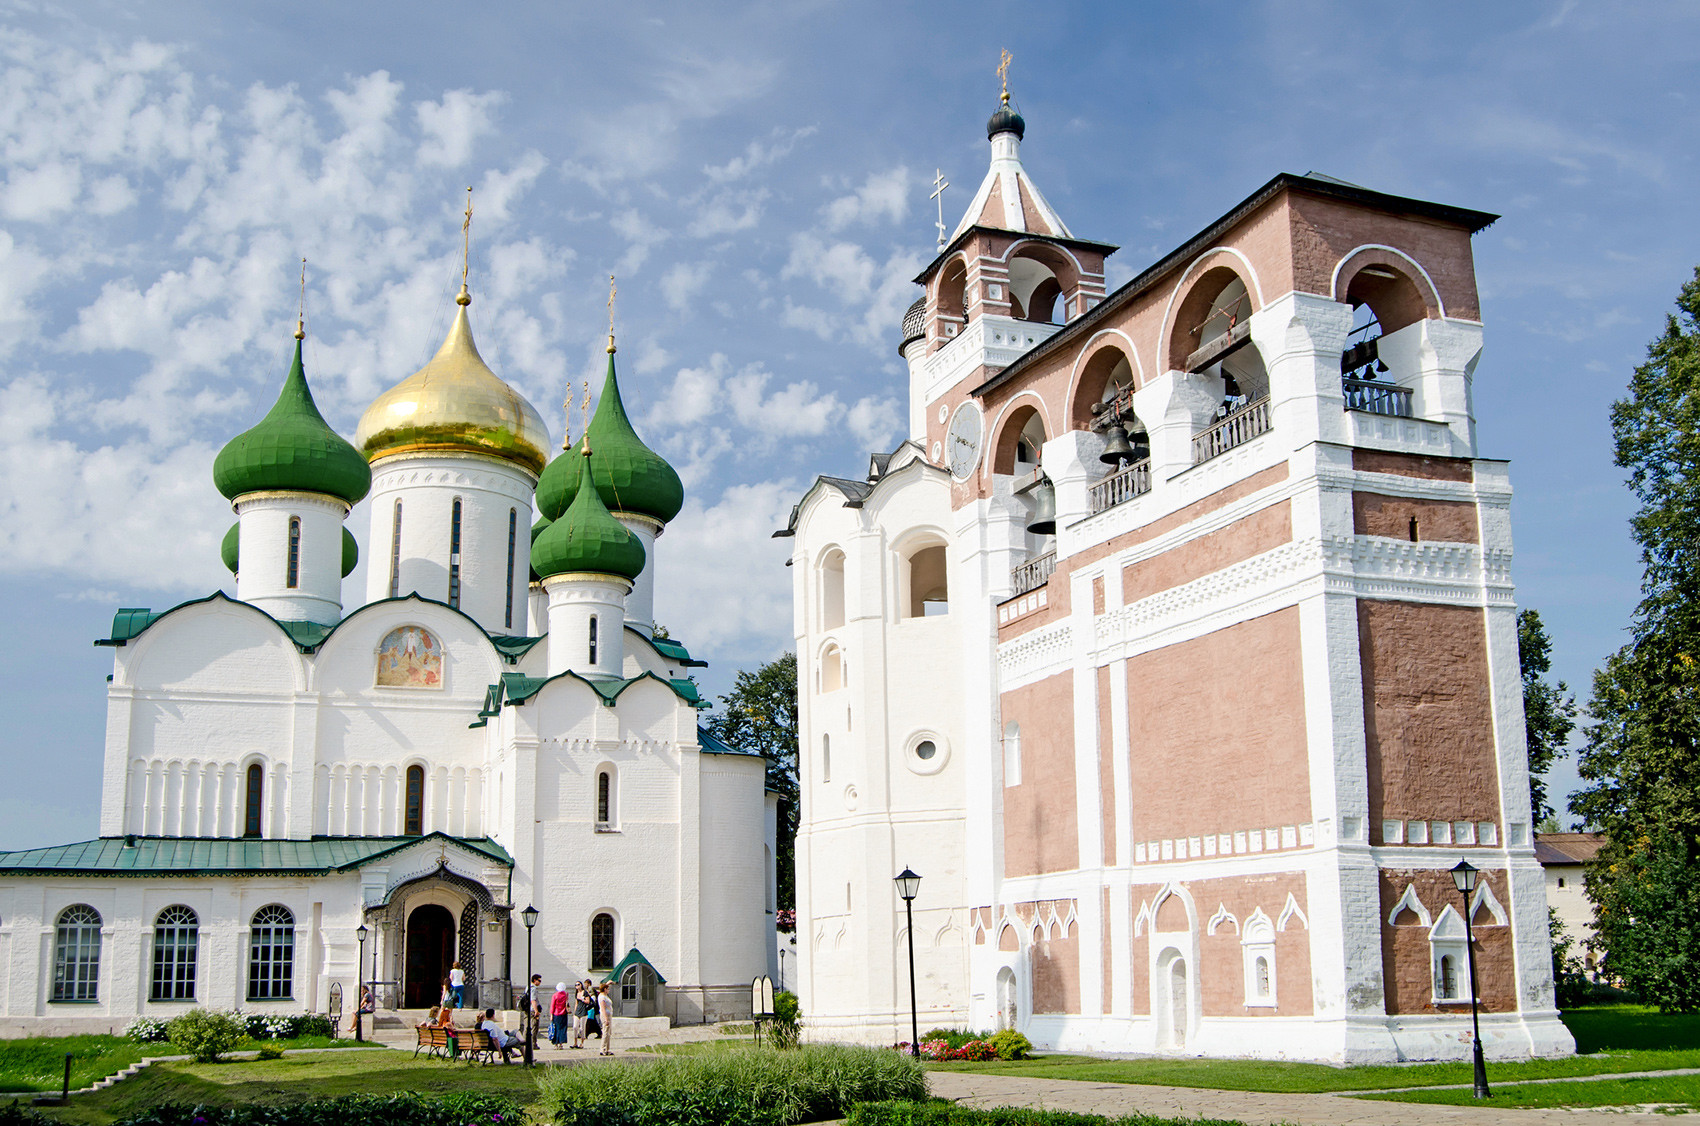 The Pokrovsky (Intercession) Convent